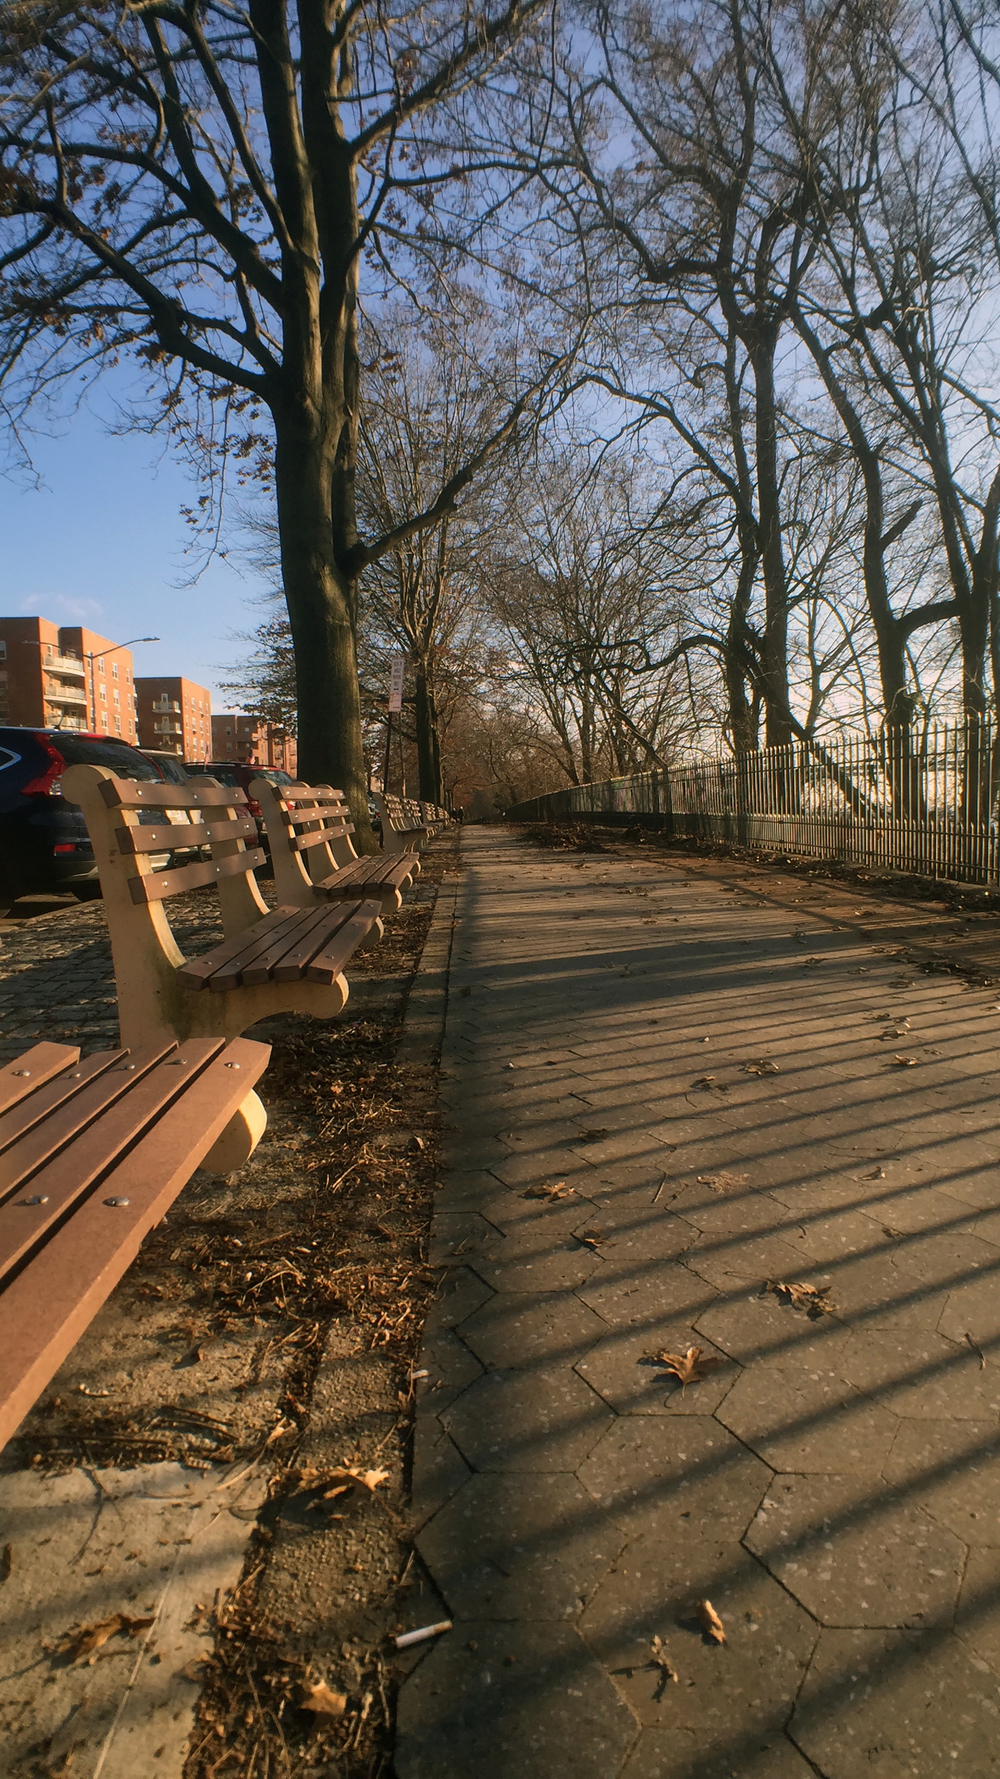 Shore Road's benches in the afternoon winter's sunlight - January 2, 2016